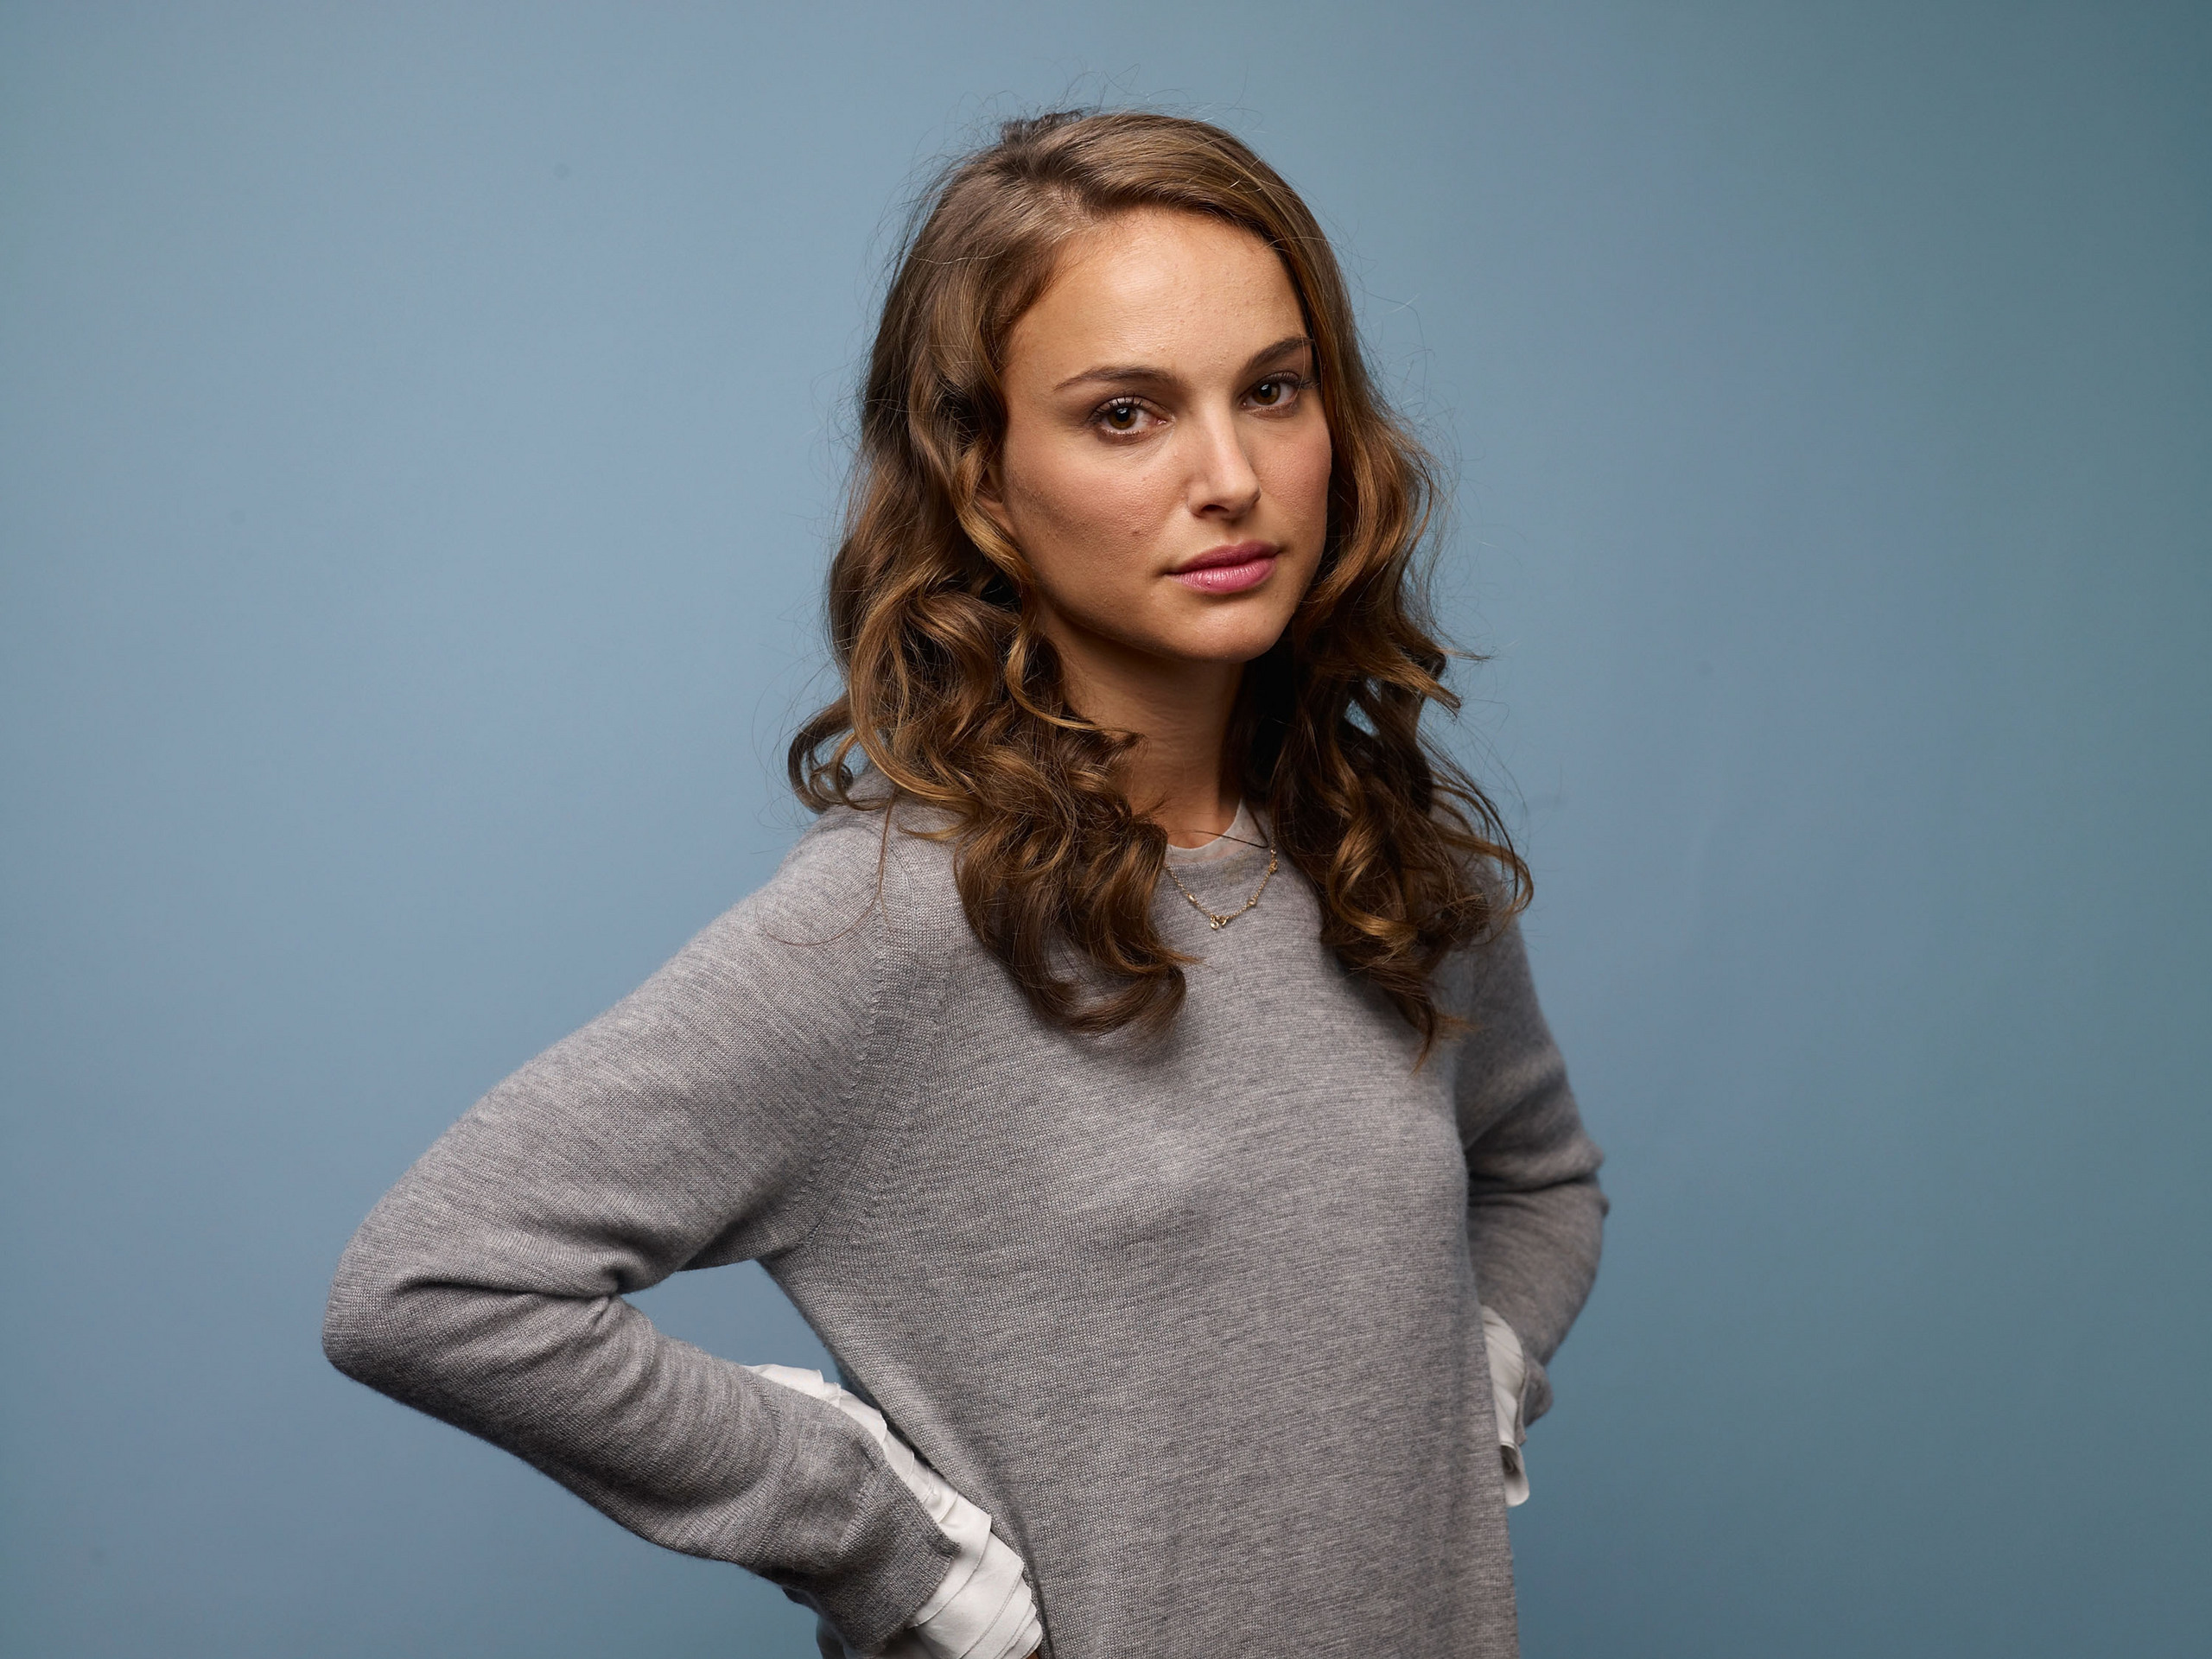 Posing for portraits during the 2010 TIFF in Guess Portrait Studio at ...: www.fanpop.com/clubs/natalie-portman/images/15557287/title/posing...